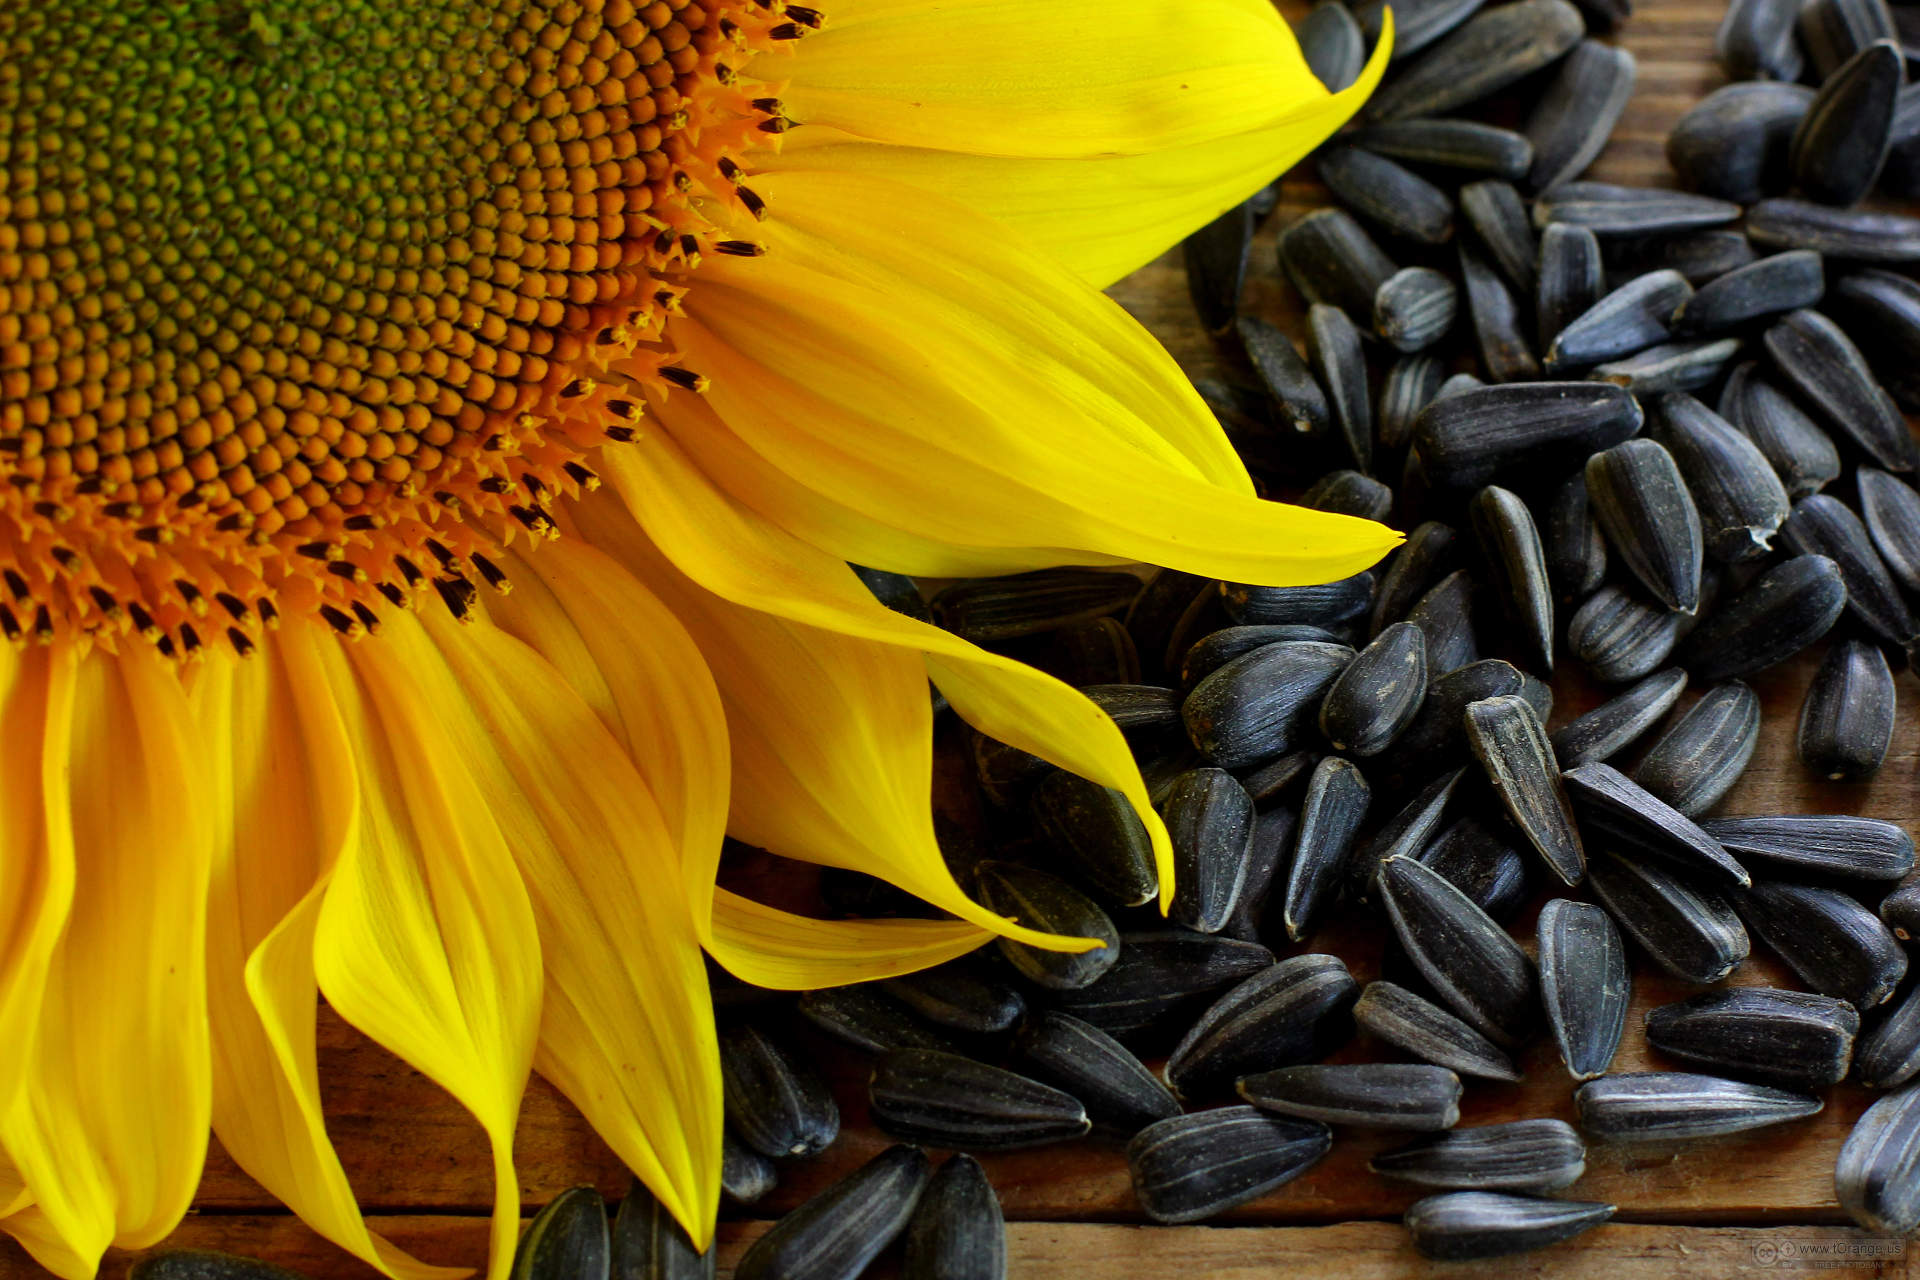 wallpaper on the desktop for the lover of sunflower seeds